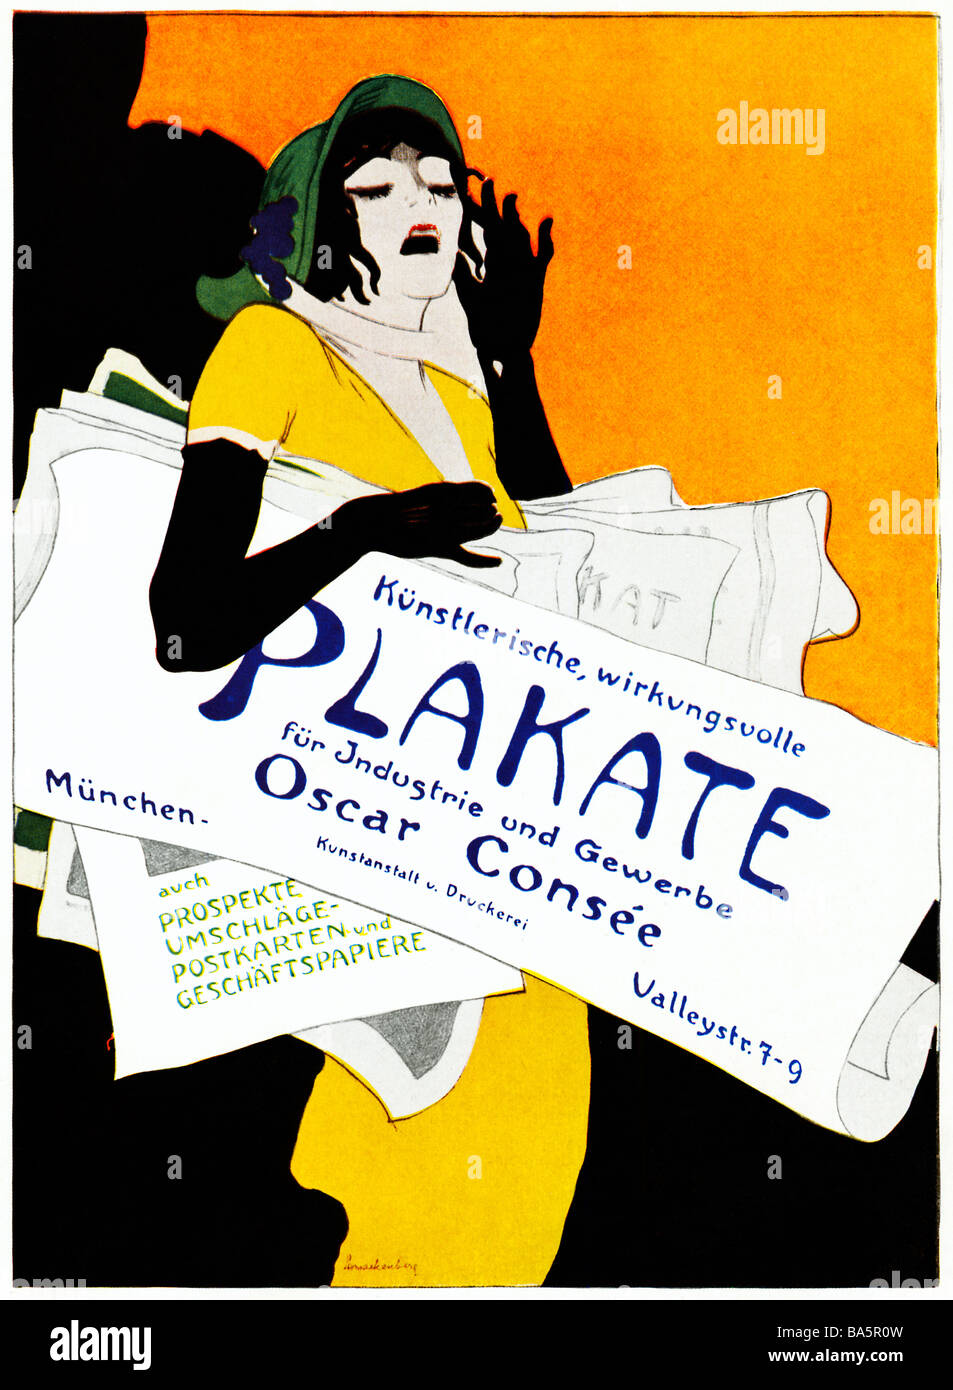 Poster design 1920s - Plakate Oscar Consee 1920 Art Deco Poster For The Munich Printer Of Artistic And Effective Posters